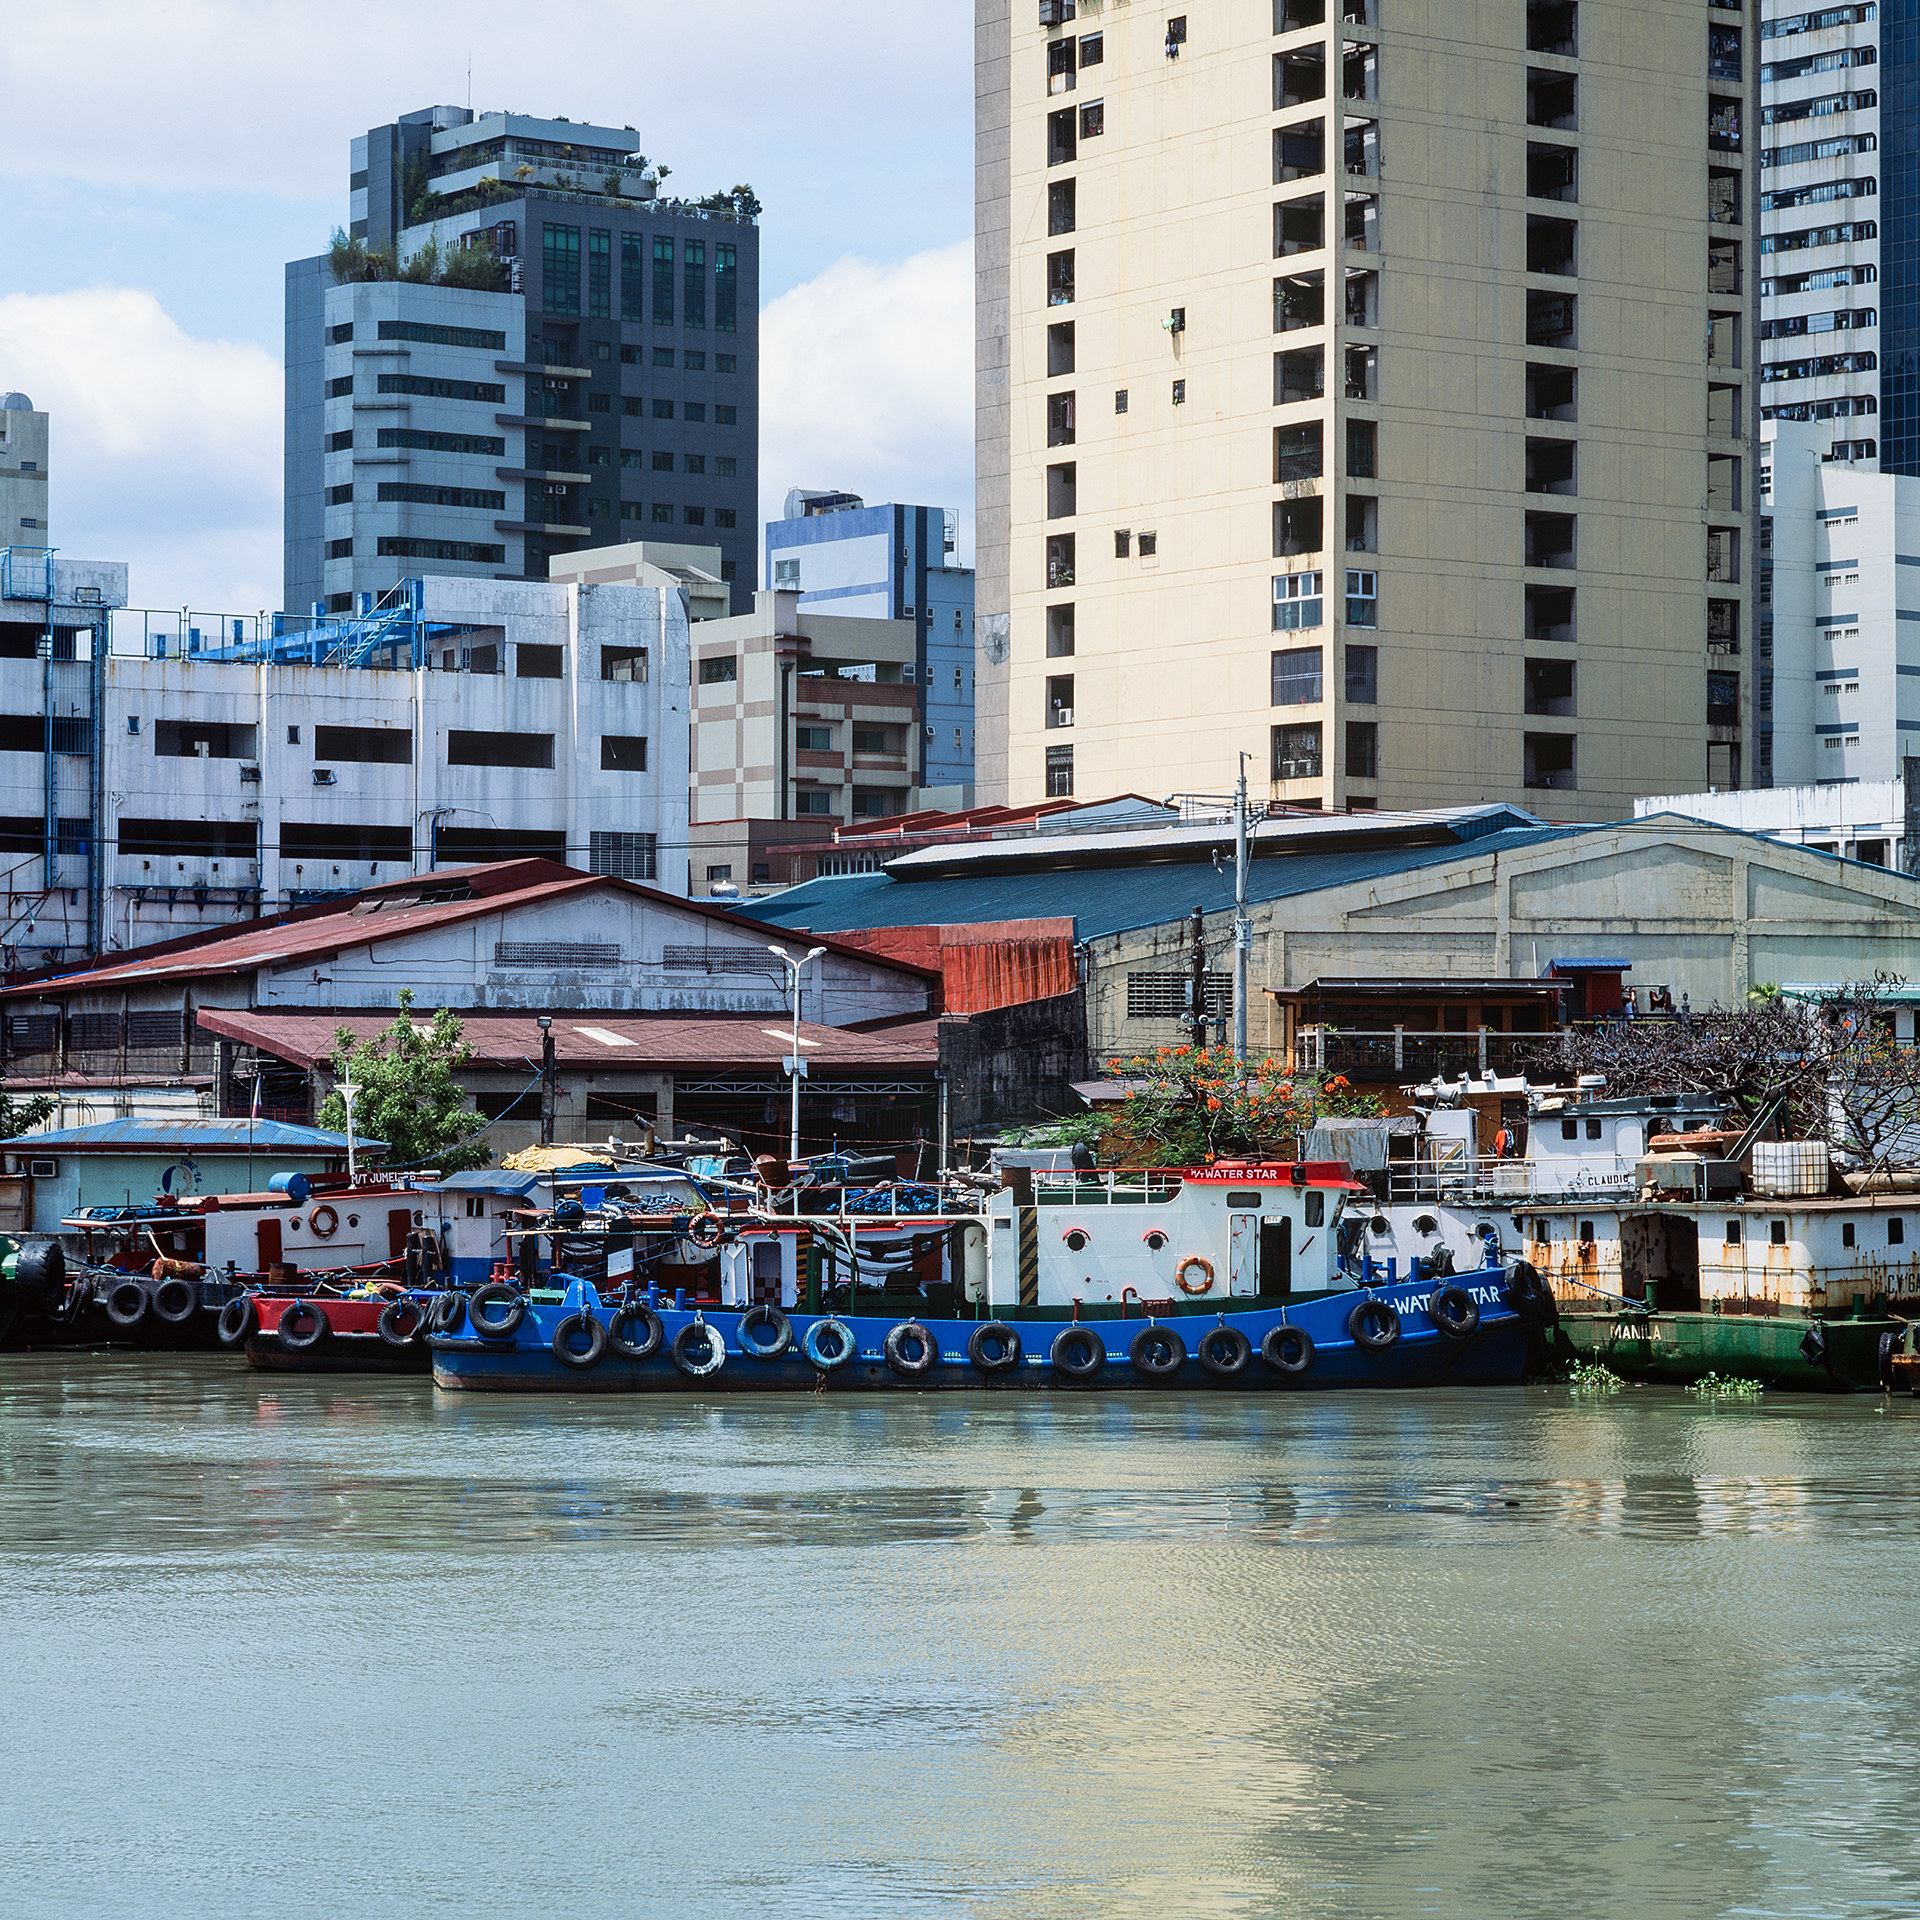 Tugboats moored on the side of the Pasig River